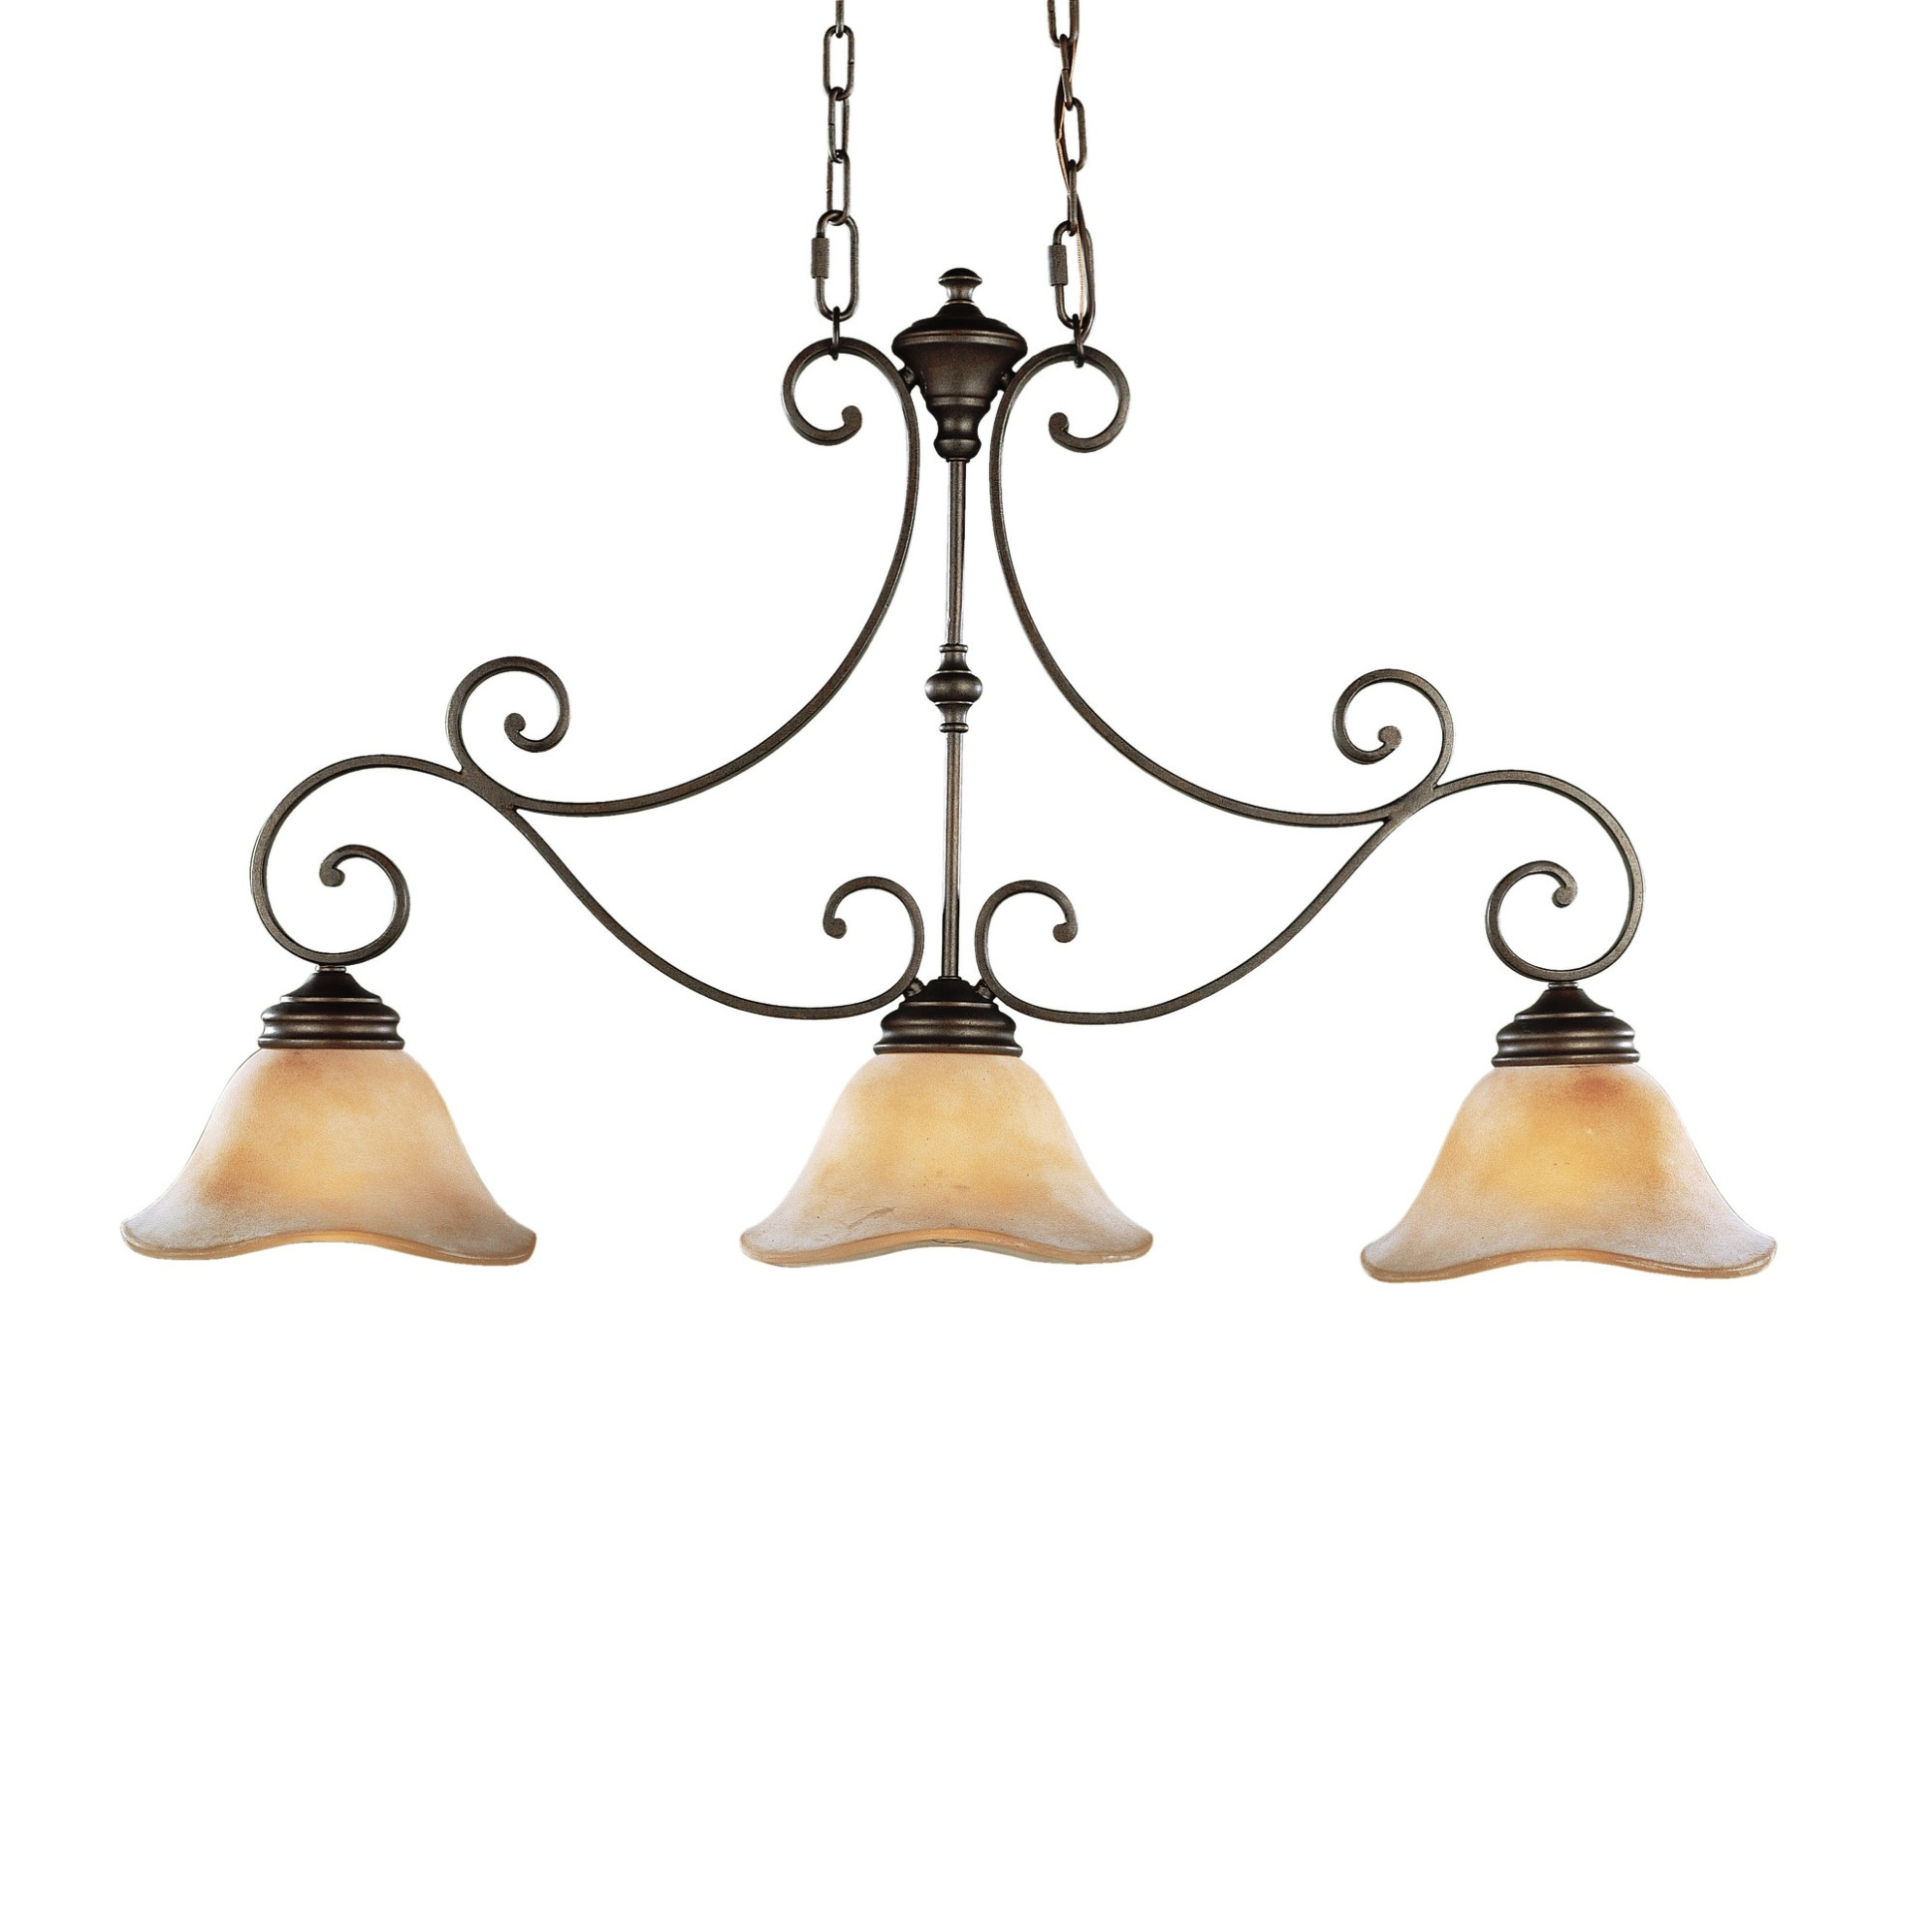 Feiss Tuscan Villa 3 Light Kitchen Island Pendant L Brilliant Source Lighting